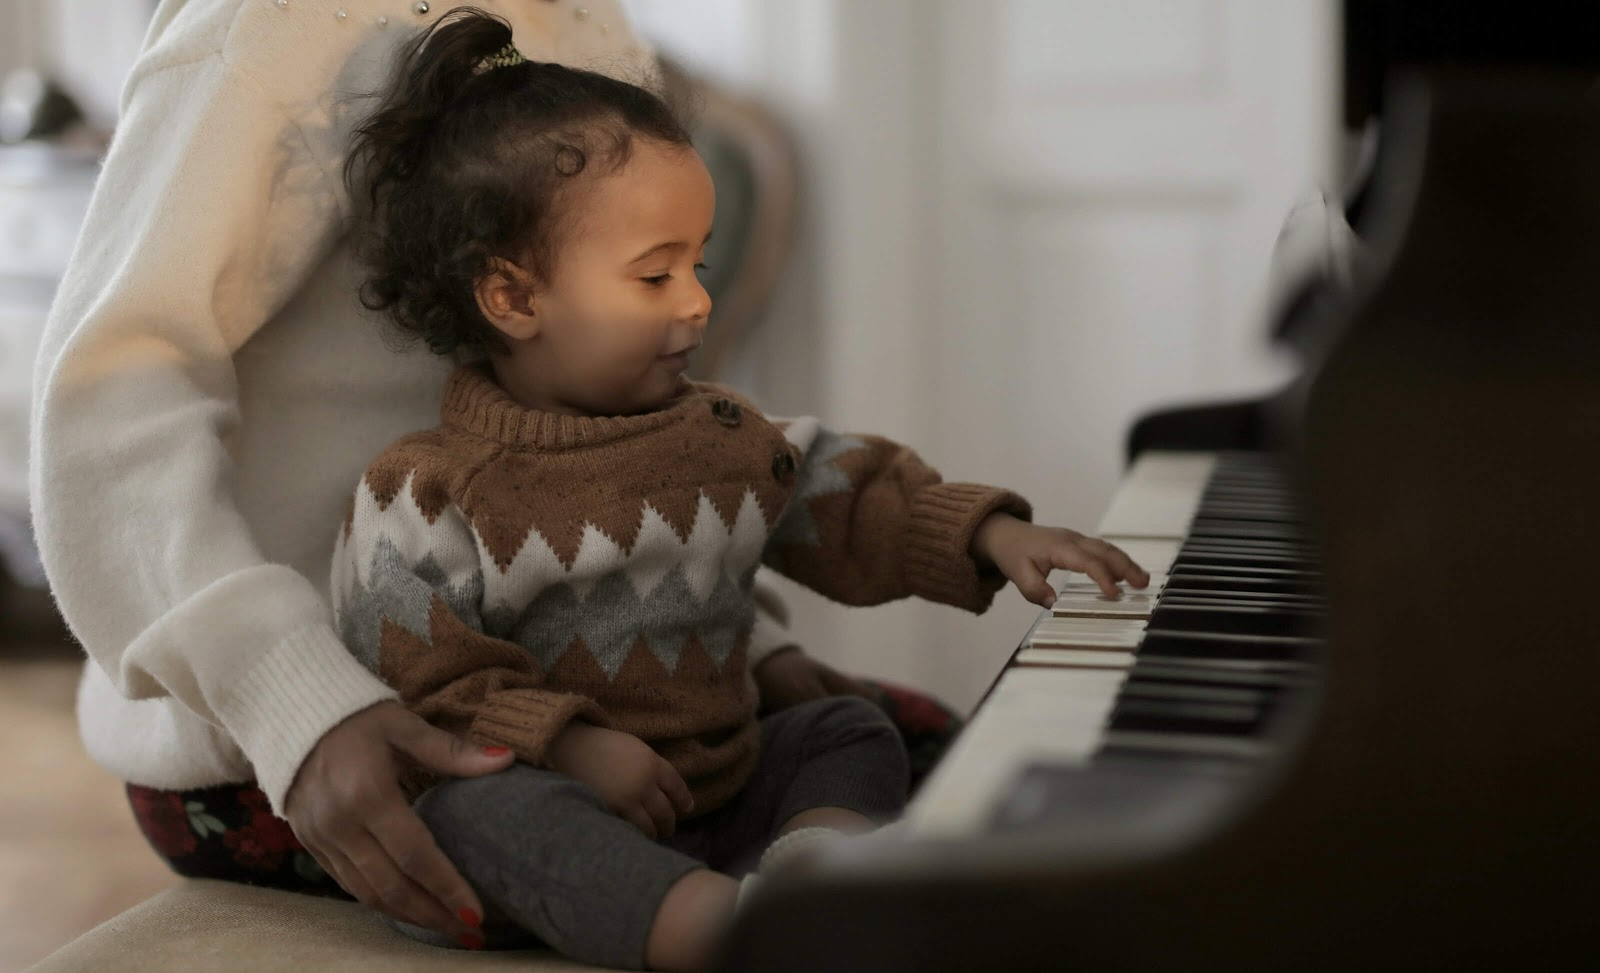 Child sitting at a piano with their hand on the keys while a parent sits behind them.